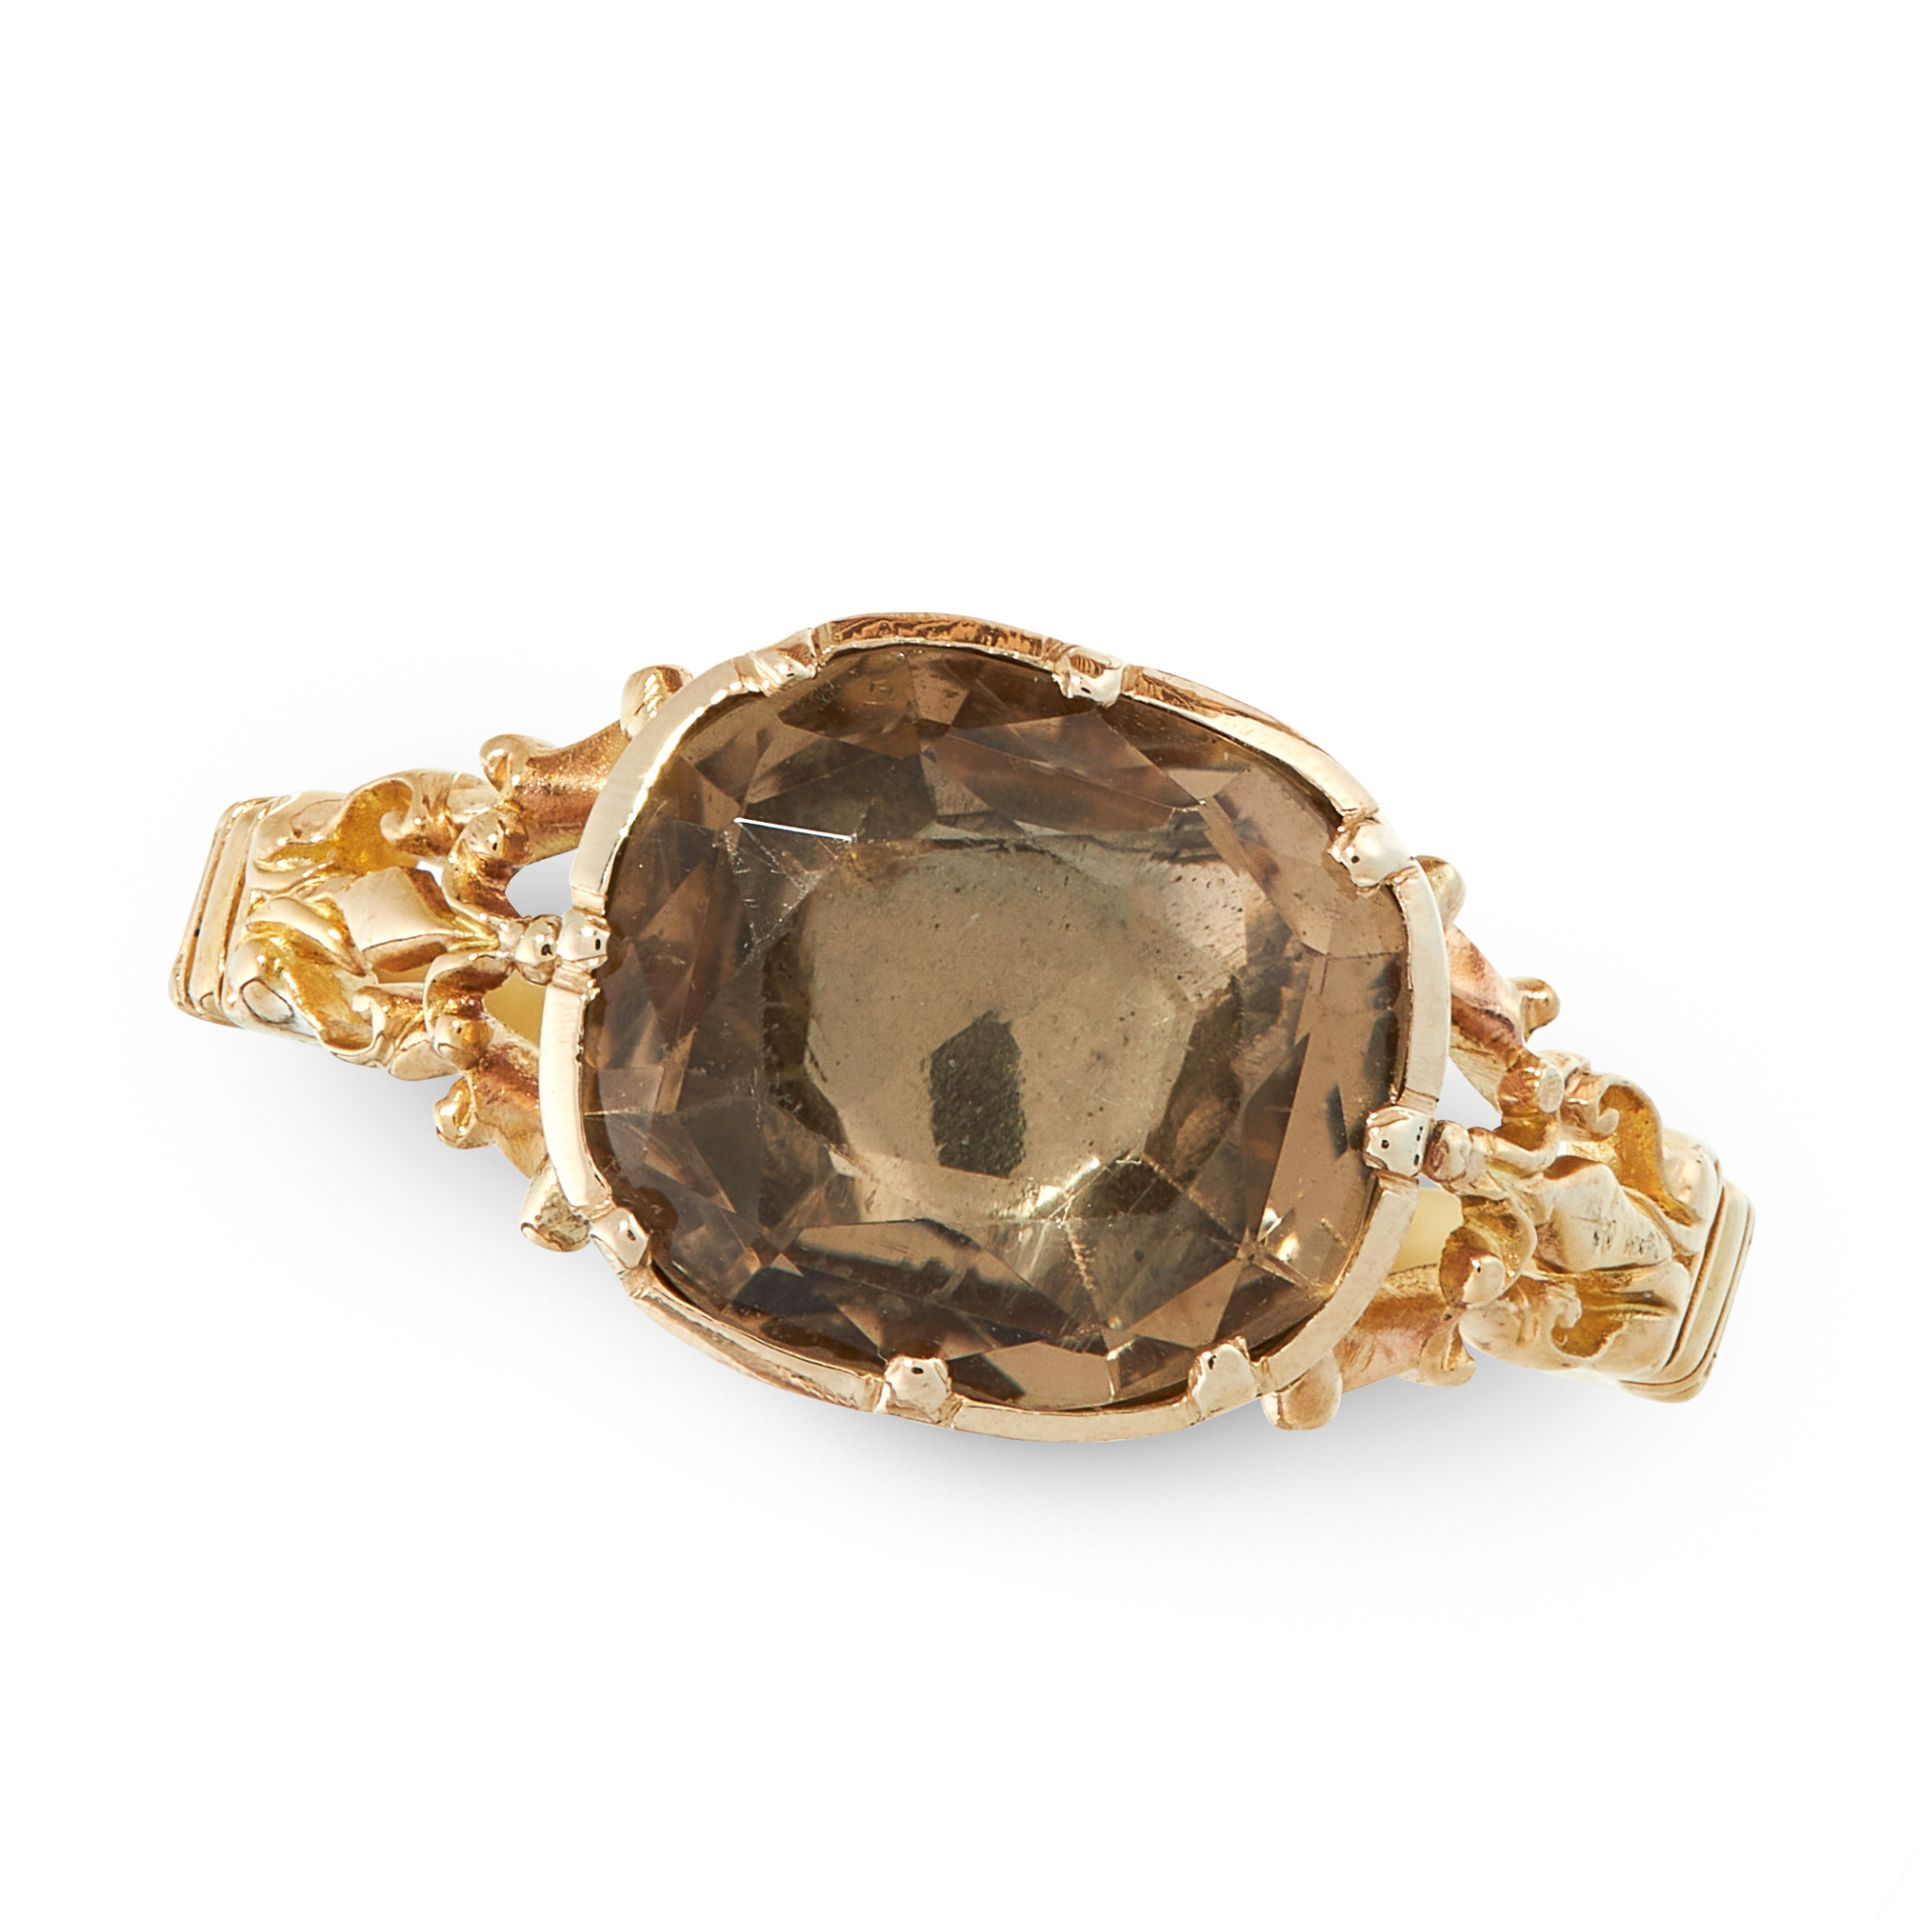 AN ANTIQUE SMOKY QUARTZ / CITRINE DRESS RING, 19TH CENTURY in yellow gold, set with a central